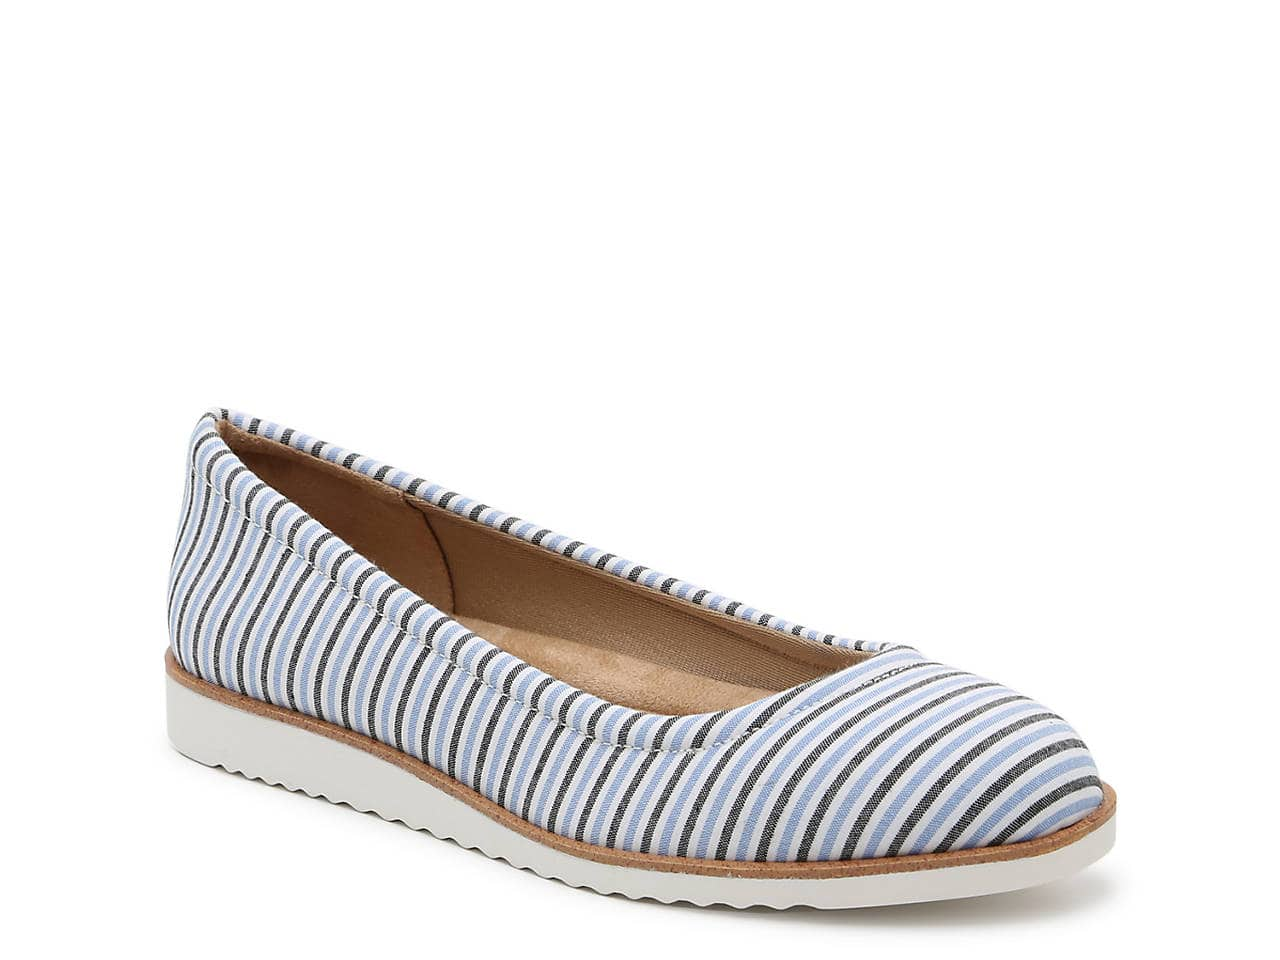 DSW has buy one get one on select styles $7.49